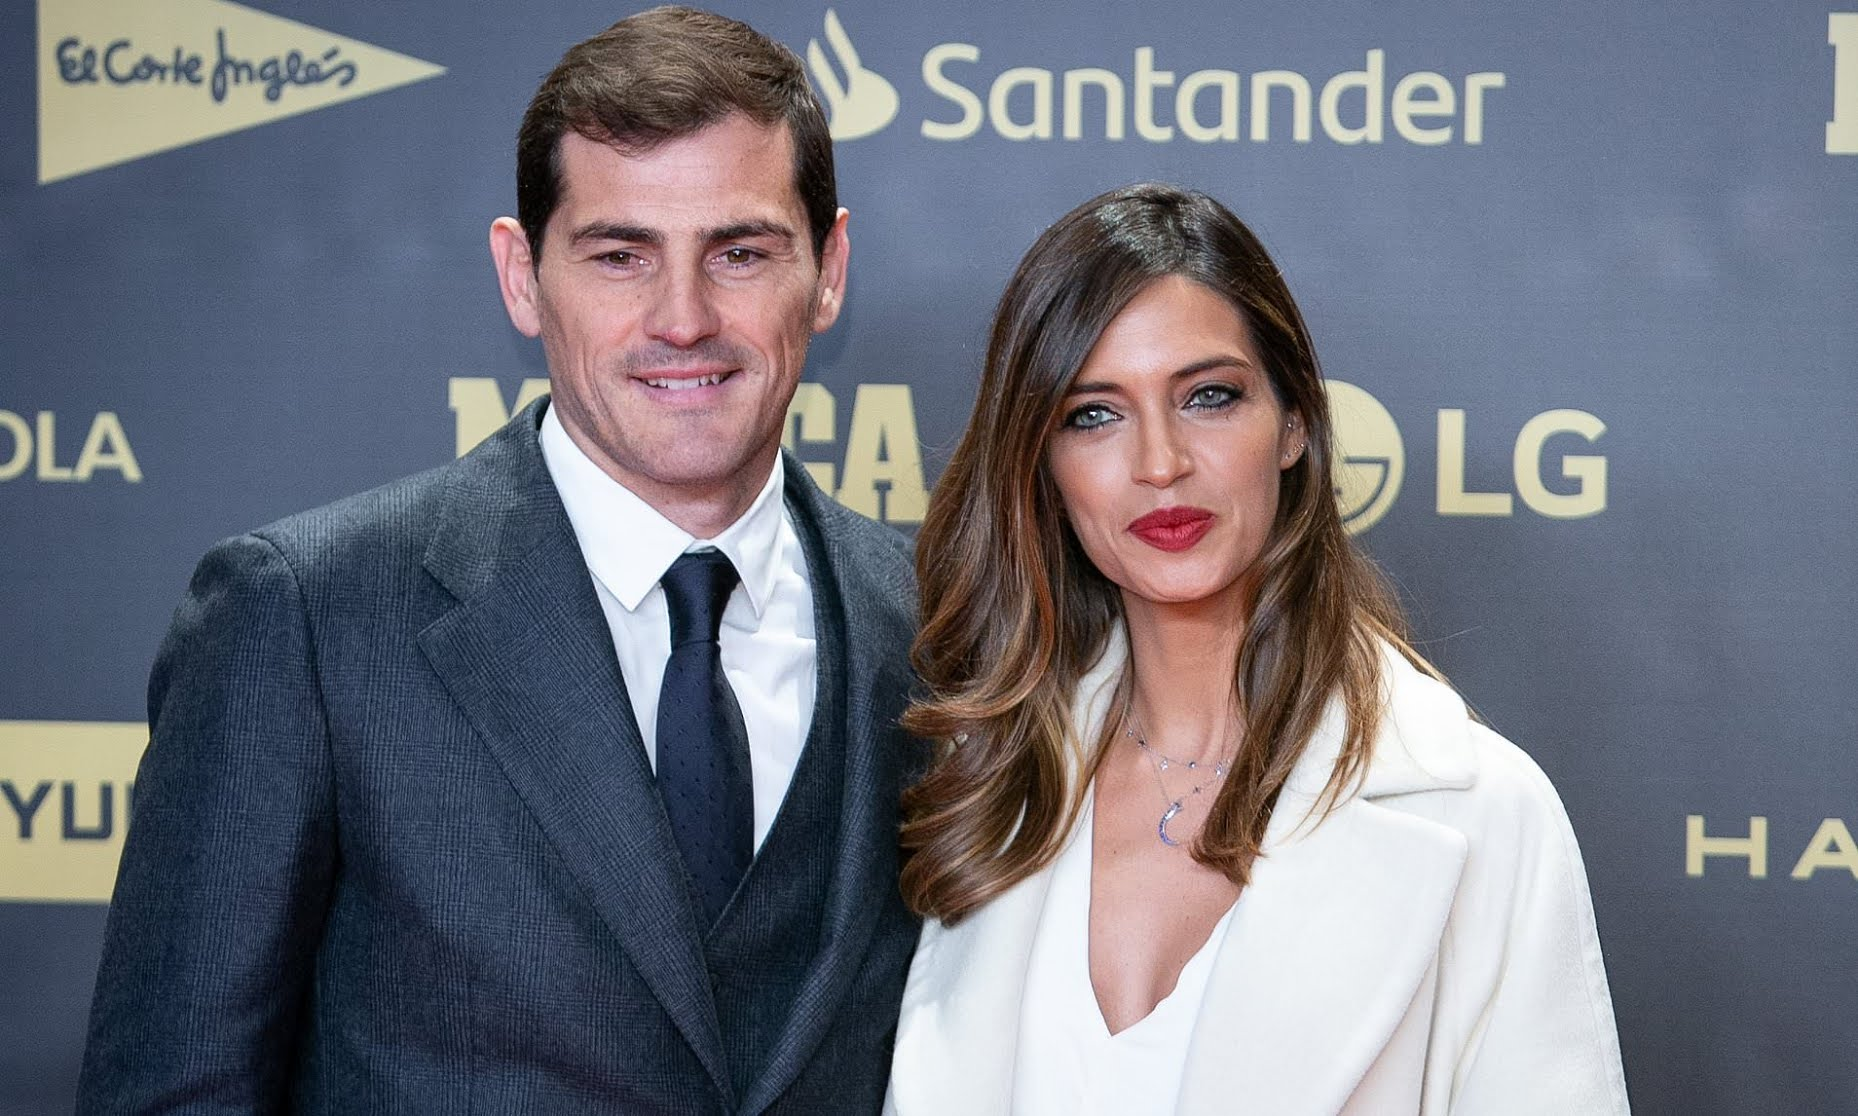 Real Madrid Legend Casillas Separates From Wife After 11 Years